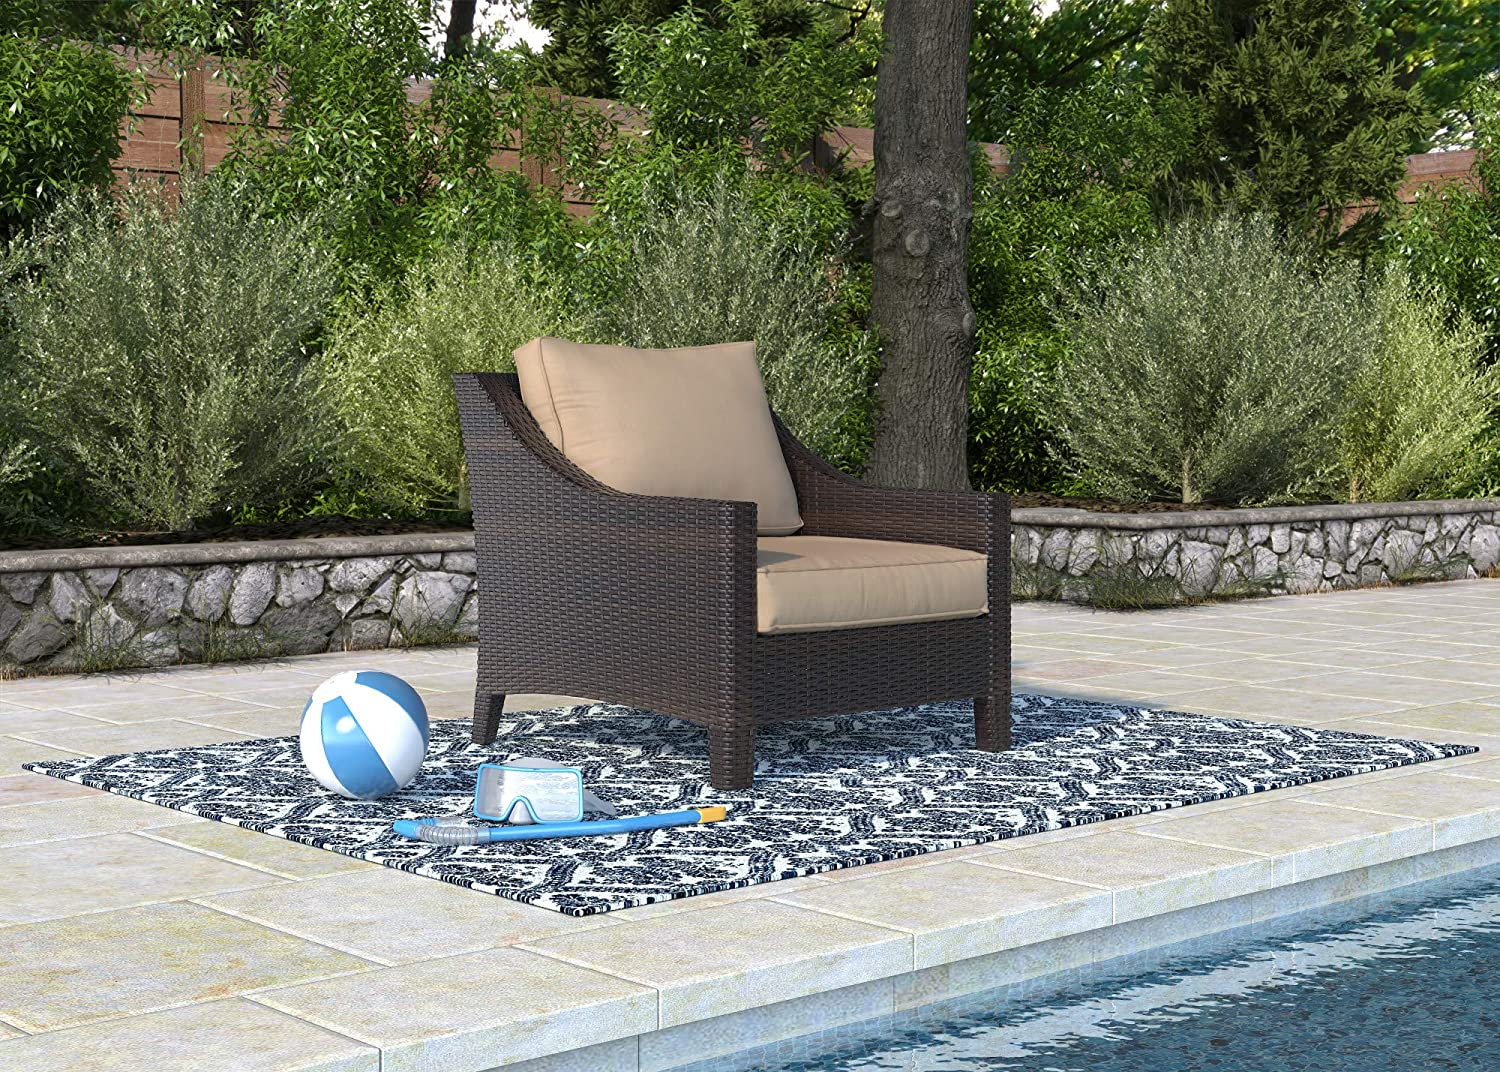 All-Weather with Thick Seat Cushion 3-Seater Sofa Garden Serta Tahoe Brown Resin Wicker Outdoor Patio Furniture Collection Porch or Pool